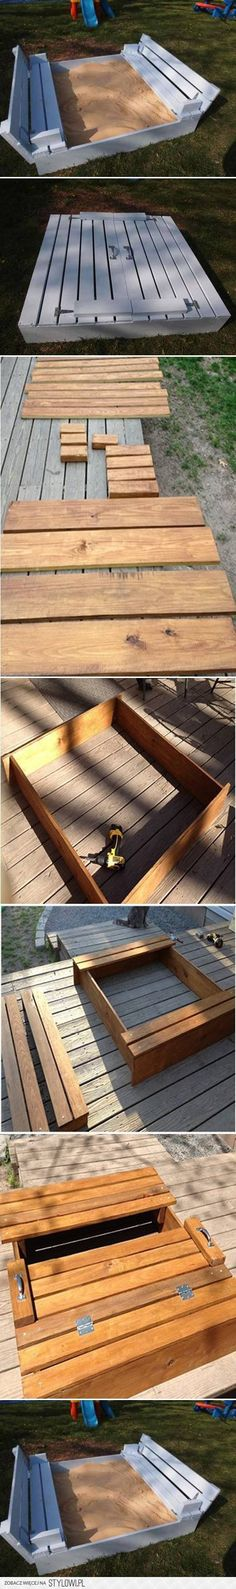 DIY Sandbox DIY Projects | UsefulDIY.com na Stylowi.pl